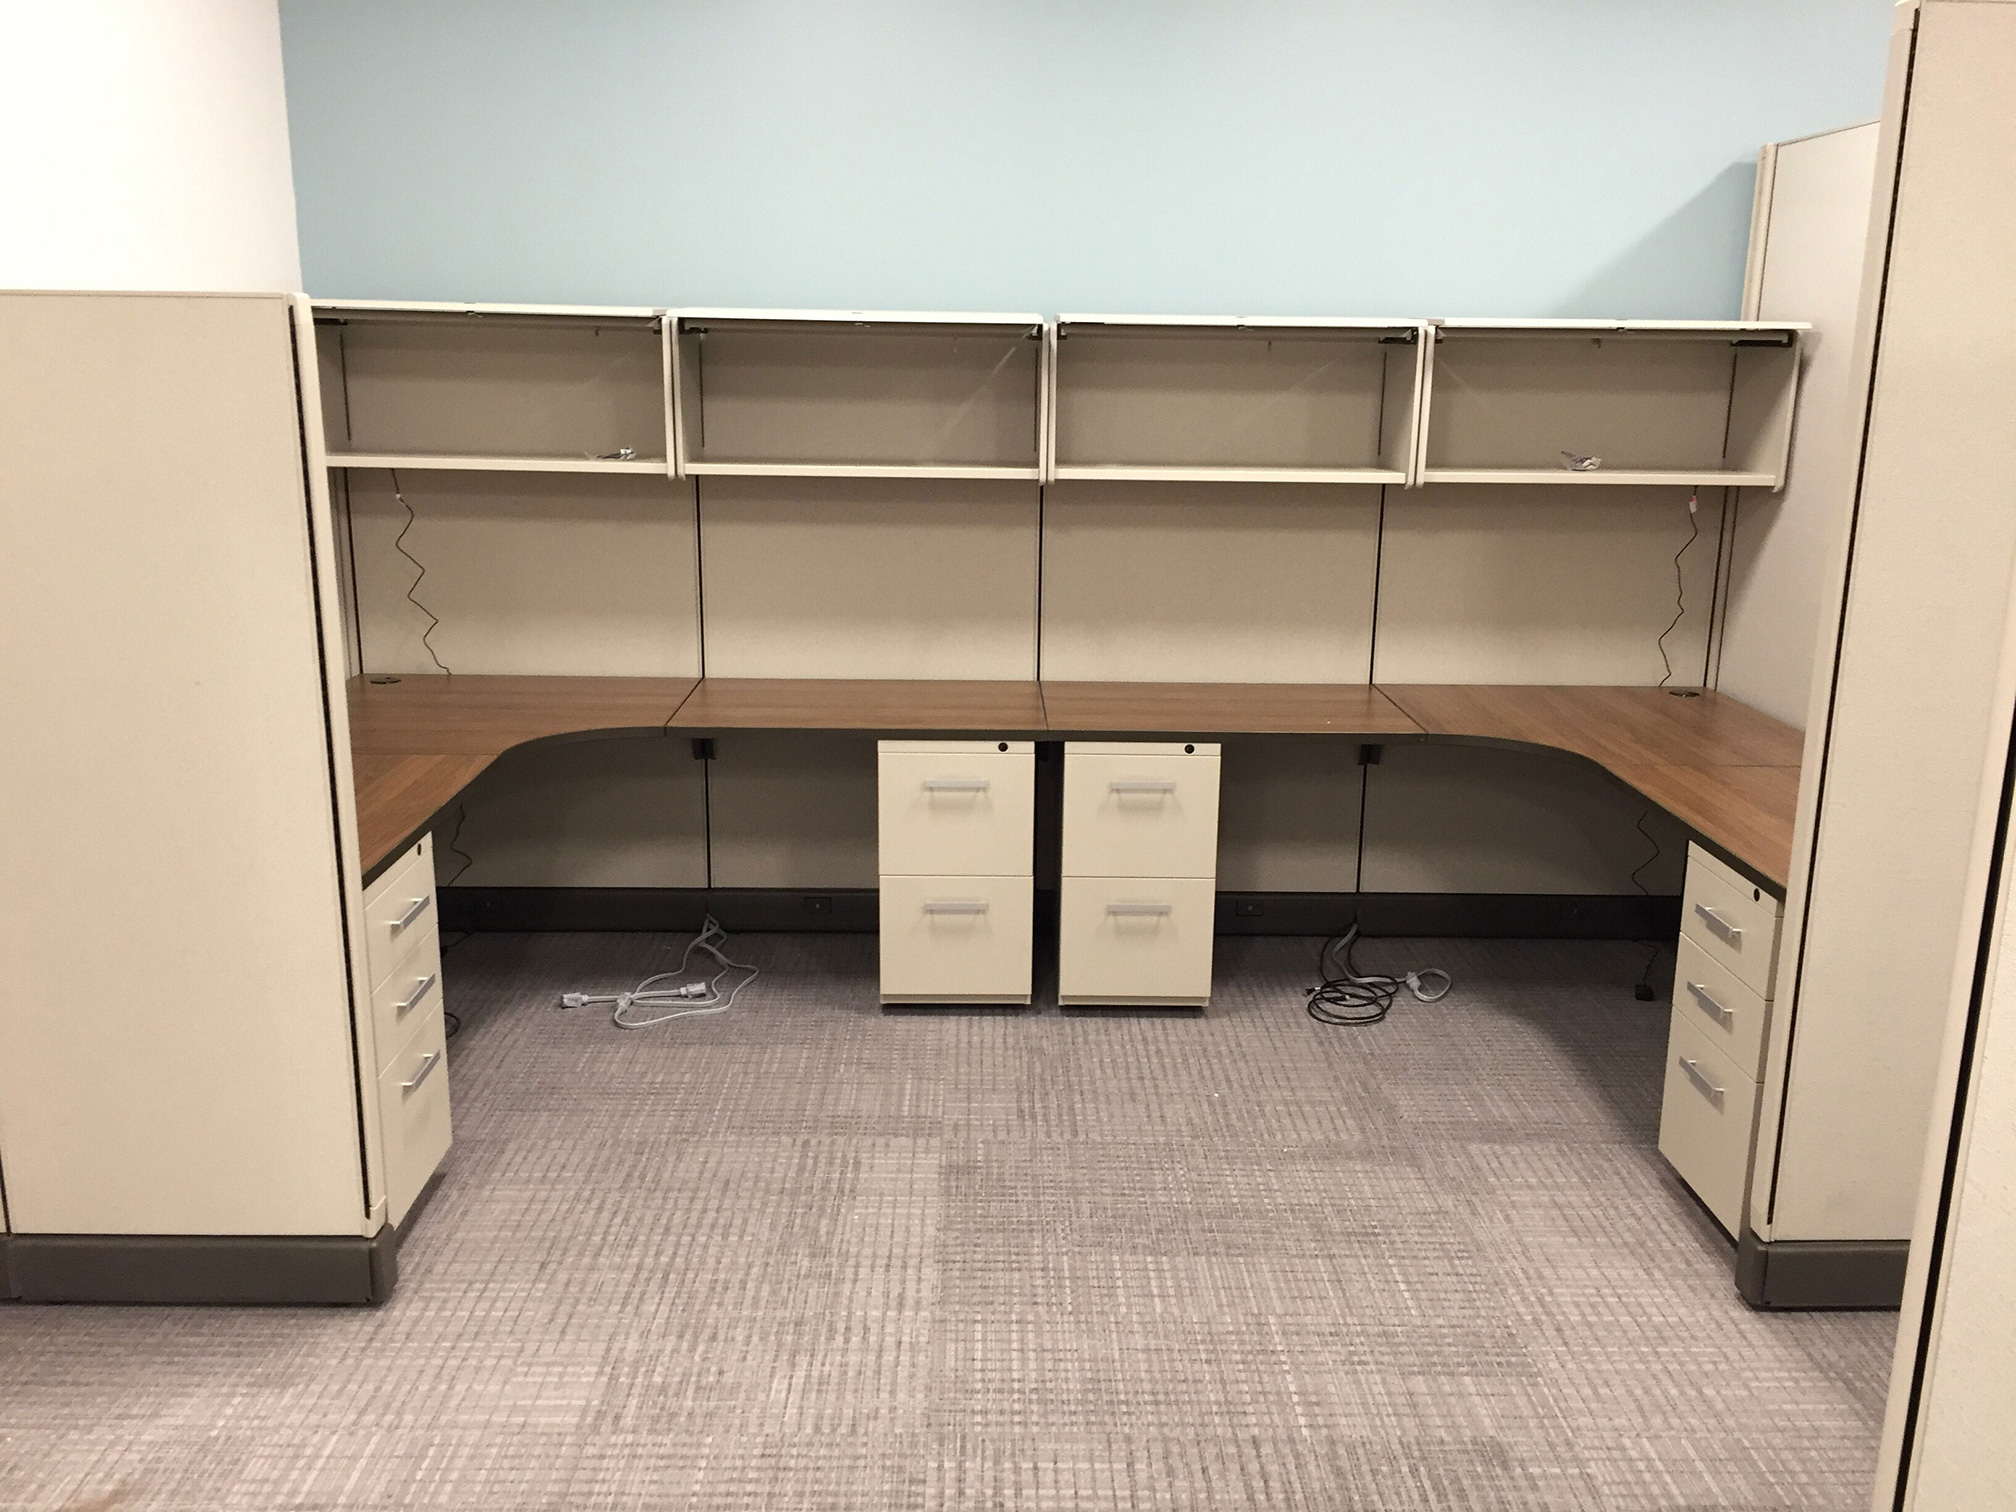 office-cubicles-for-sale-in-apopka-florida-3-1.jpg